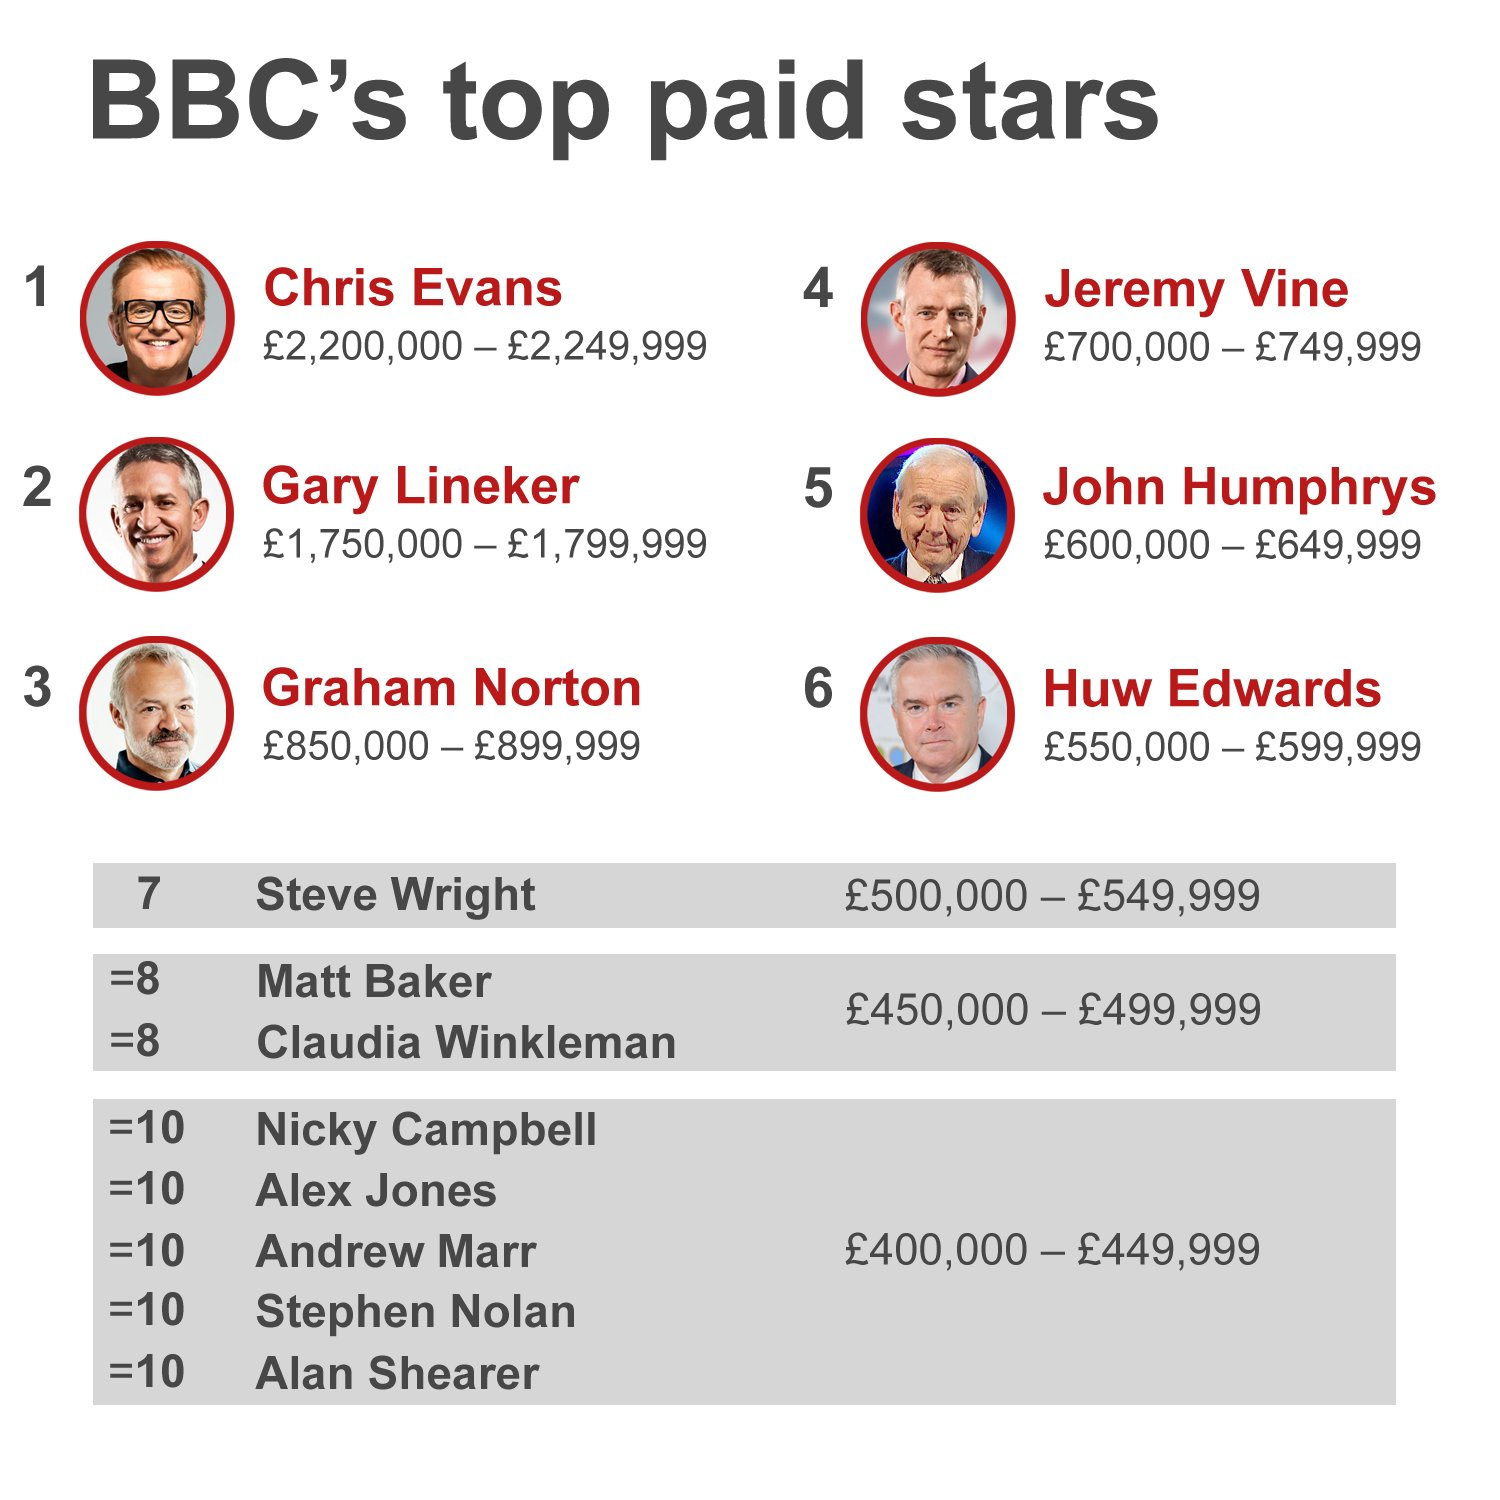 10 highest-paid BBC stars and journalists https://t.co/OCu1u7WiIf #bbcpay https://t.co/G5DtVN8vrB